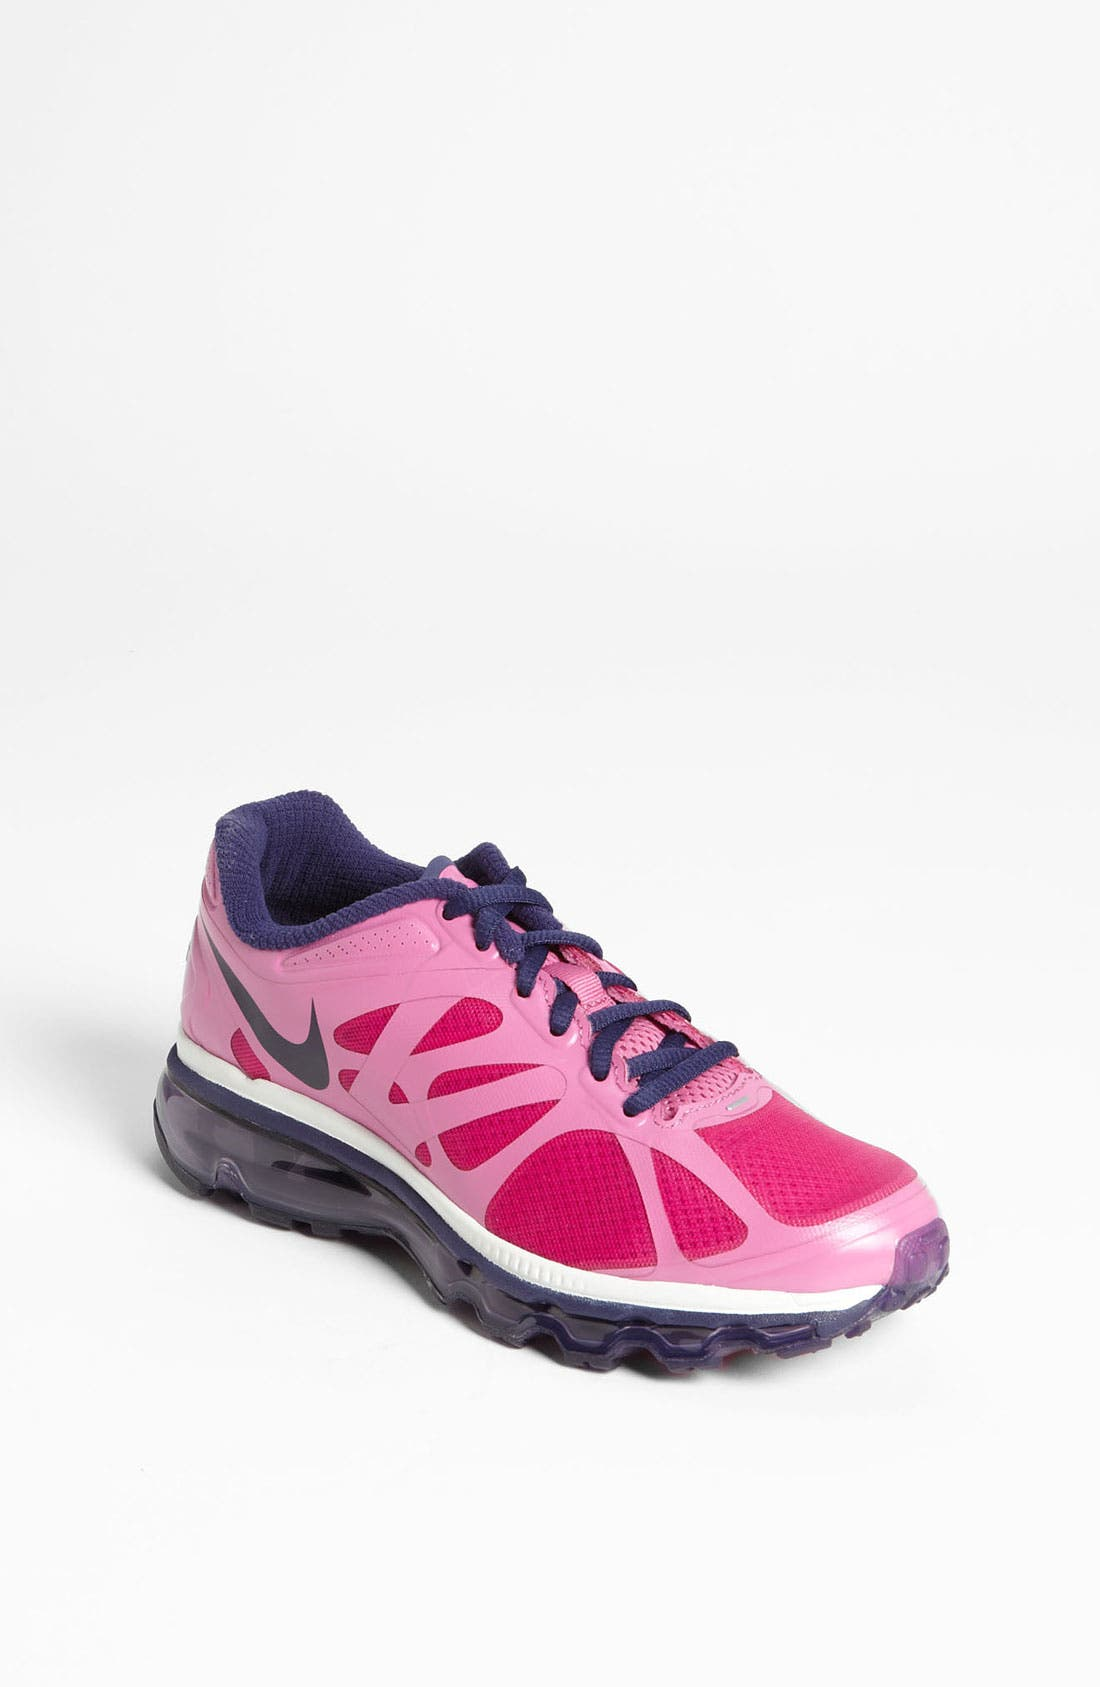 Alternate Image 1 Selected - Nike 'Air Max 2012' Running Shoe (Big Kid)